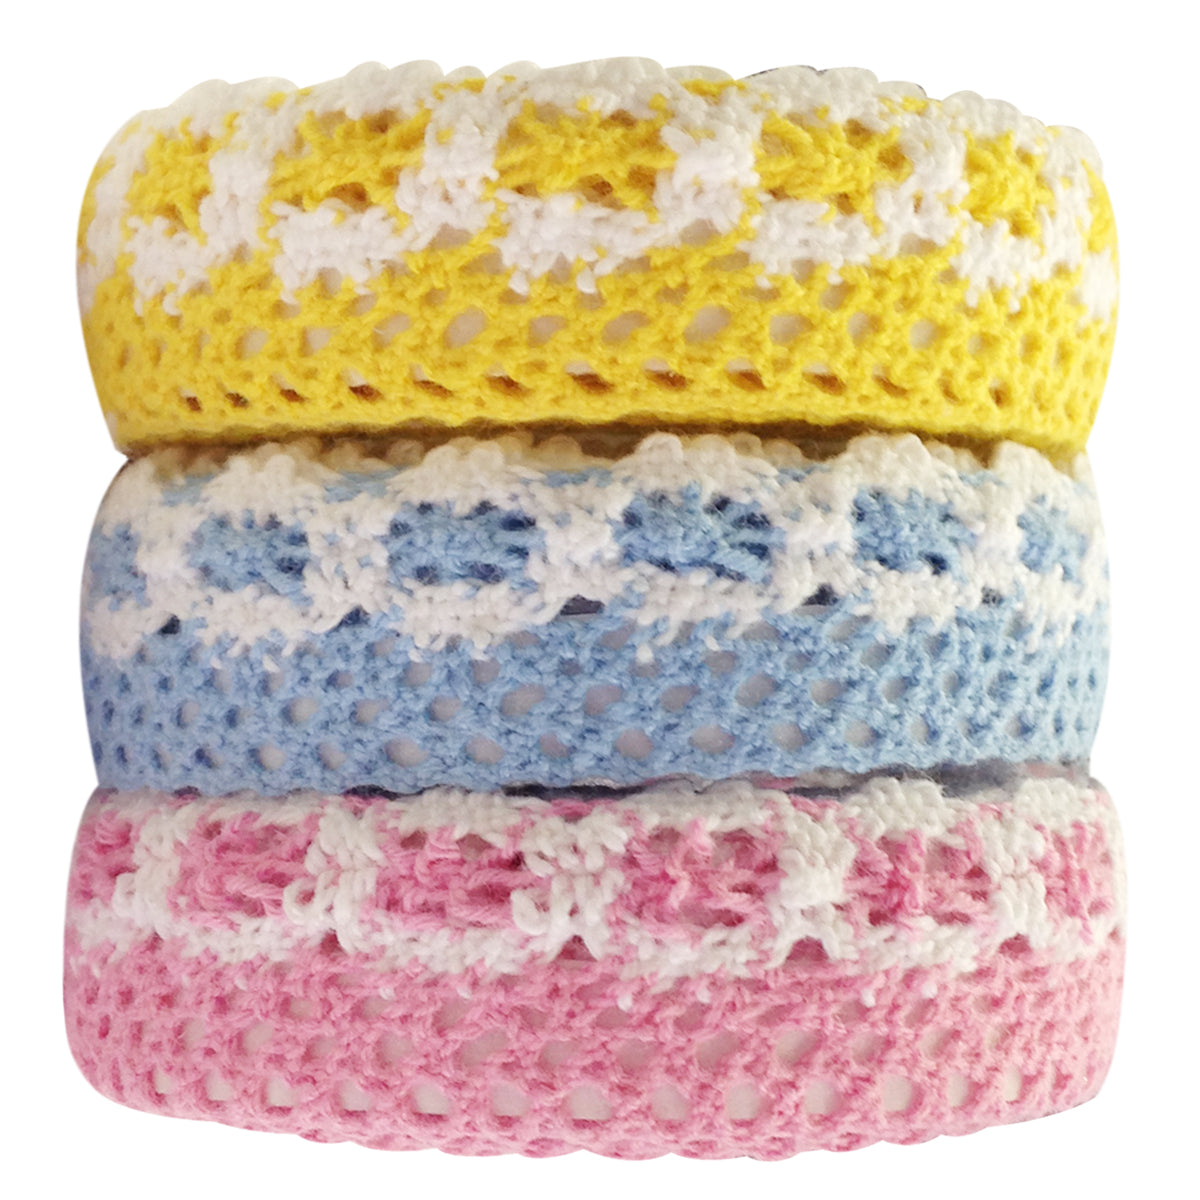 Wrapables Colorful Decorative Adhesive Lace Tape Set Of 3 ( Yellow, Blue, Pink)